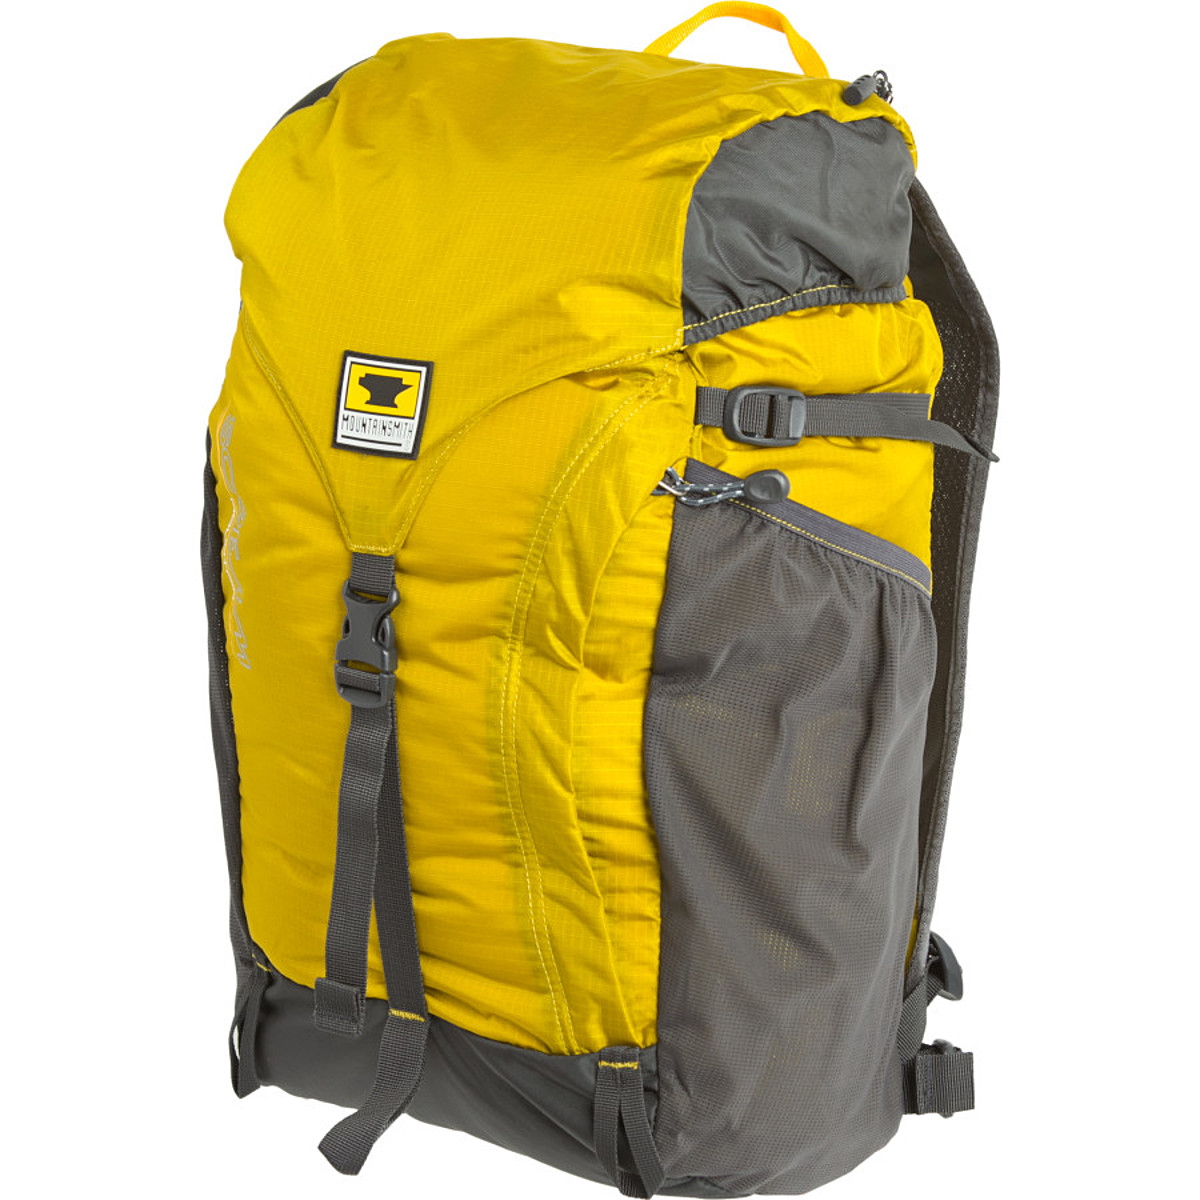 Mountainsmith Scream 25 Mountainlight